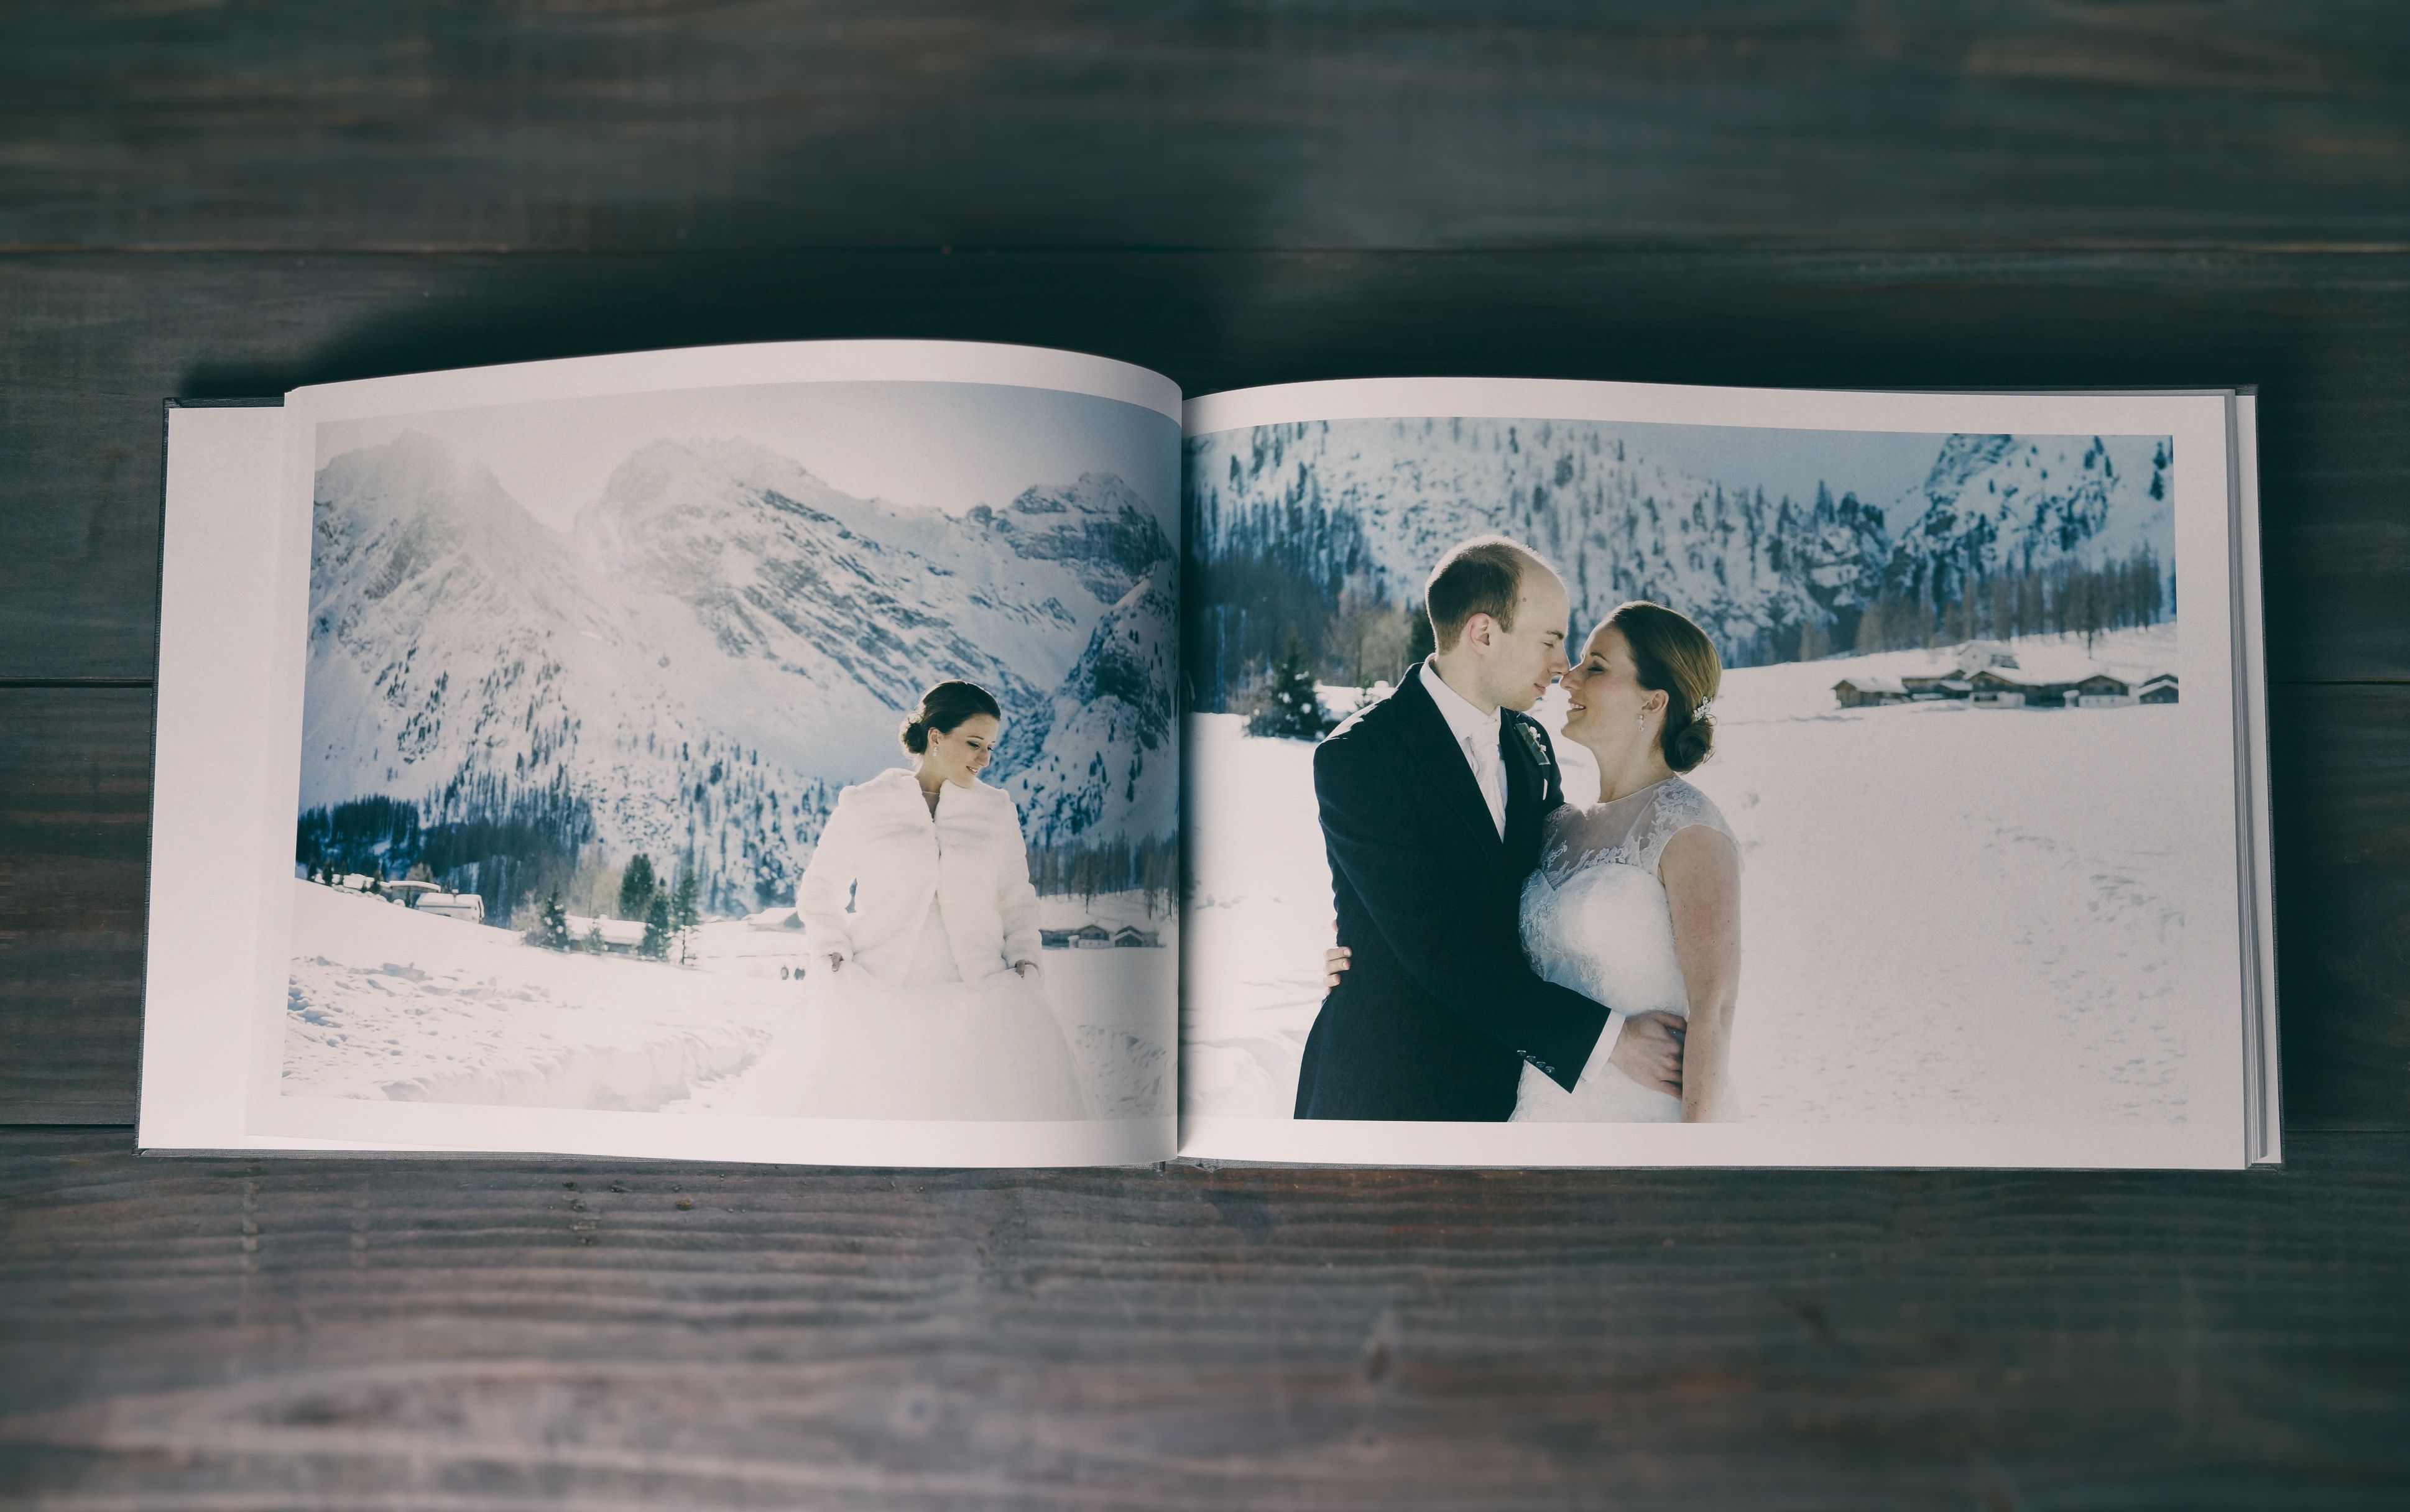 Our 18x12 Sweet Albums reach as big as the mountain tops and make photos look stunning. Photos by Andrea Kuehnis Photography